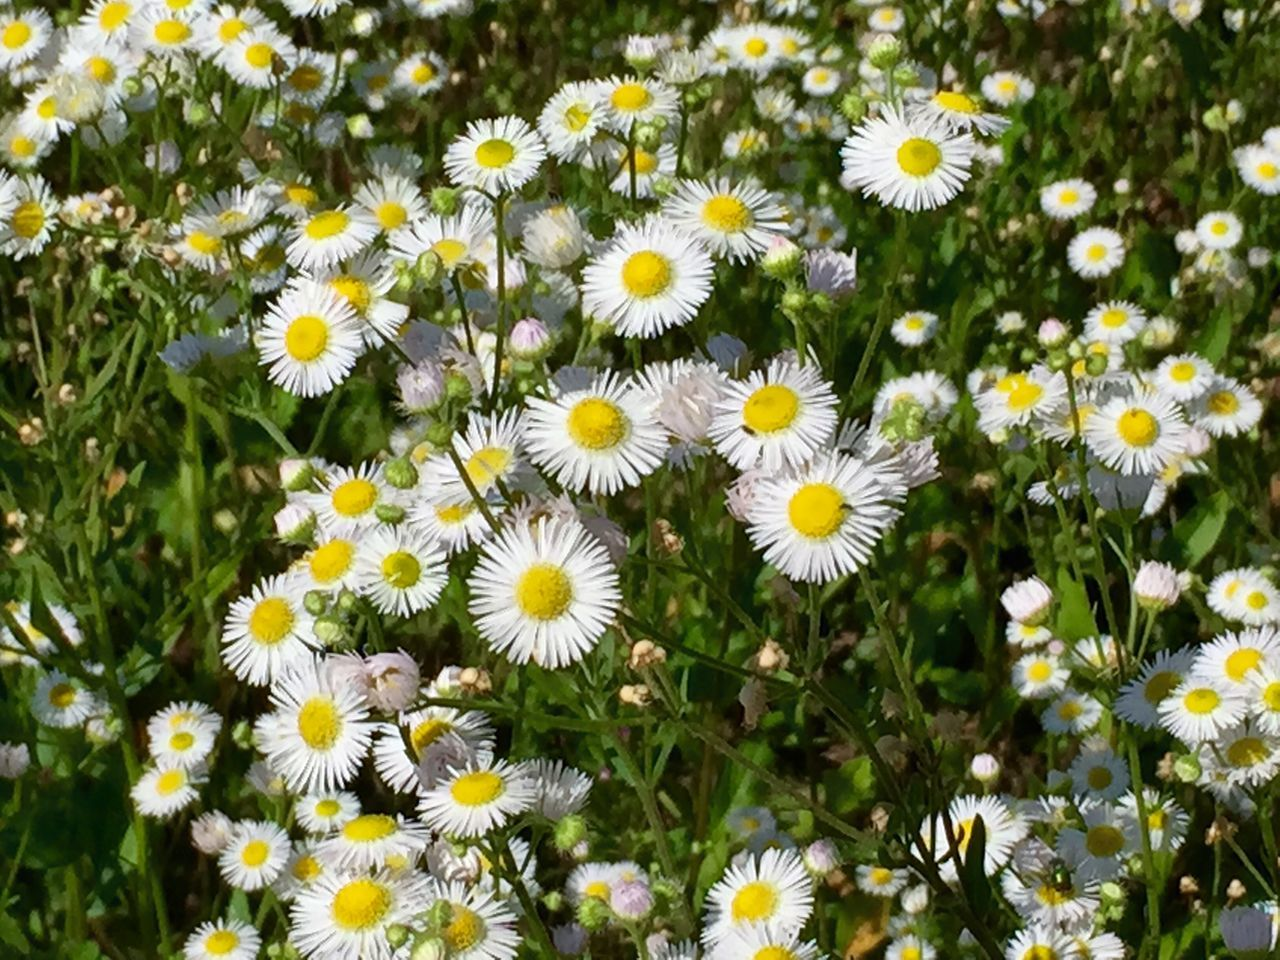 flower, petal, fragility, nature, flower head, growth, beauty in nature, yellow, plant, daisy, freshness, blooming, day, no people, outdoors, close-up